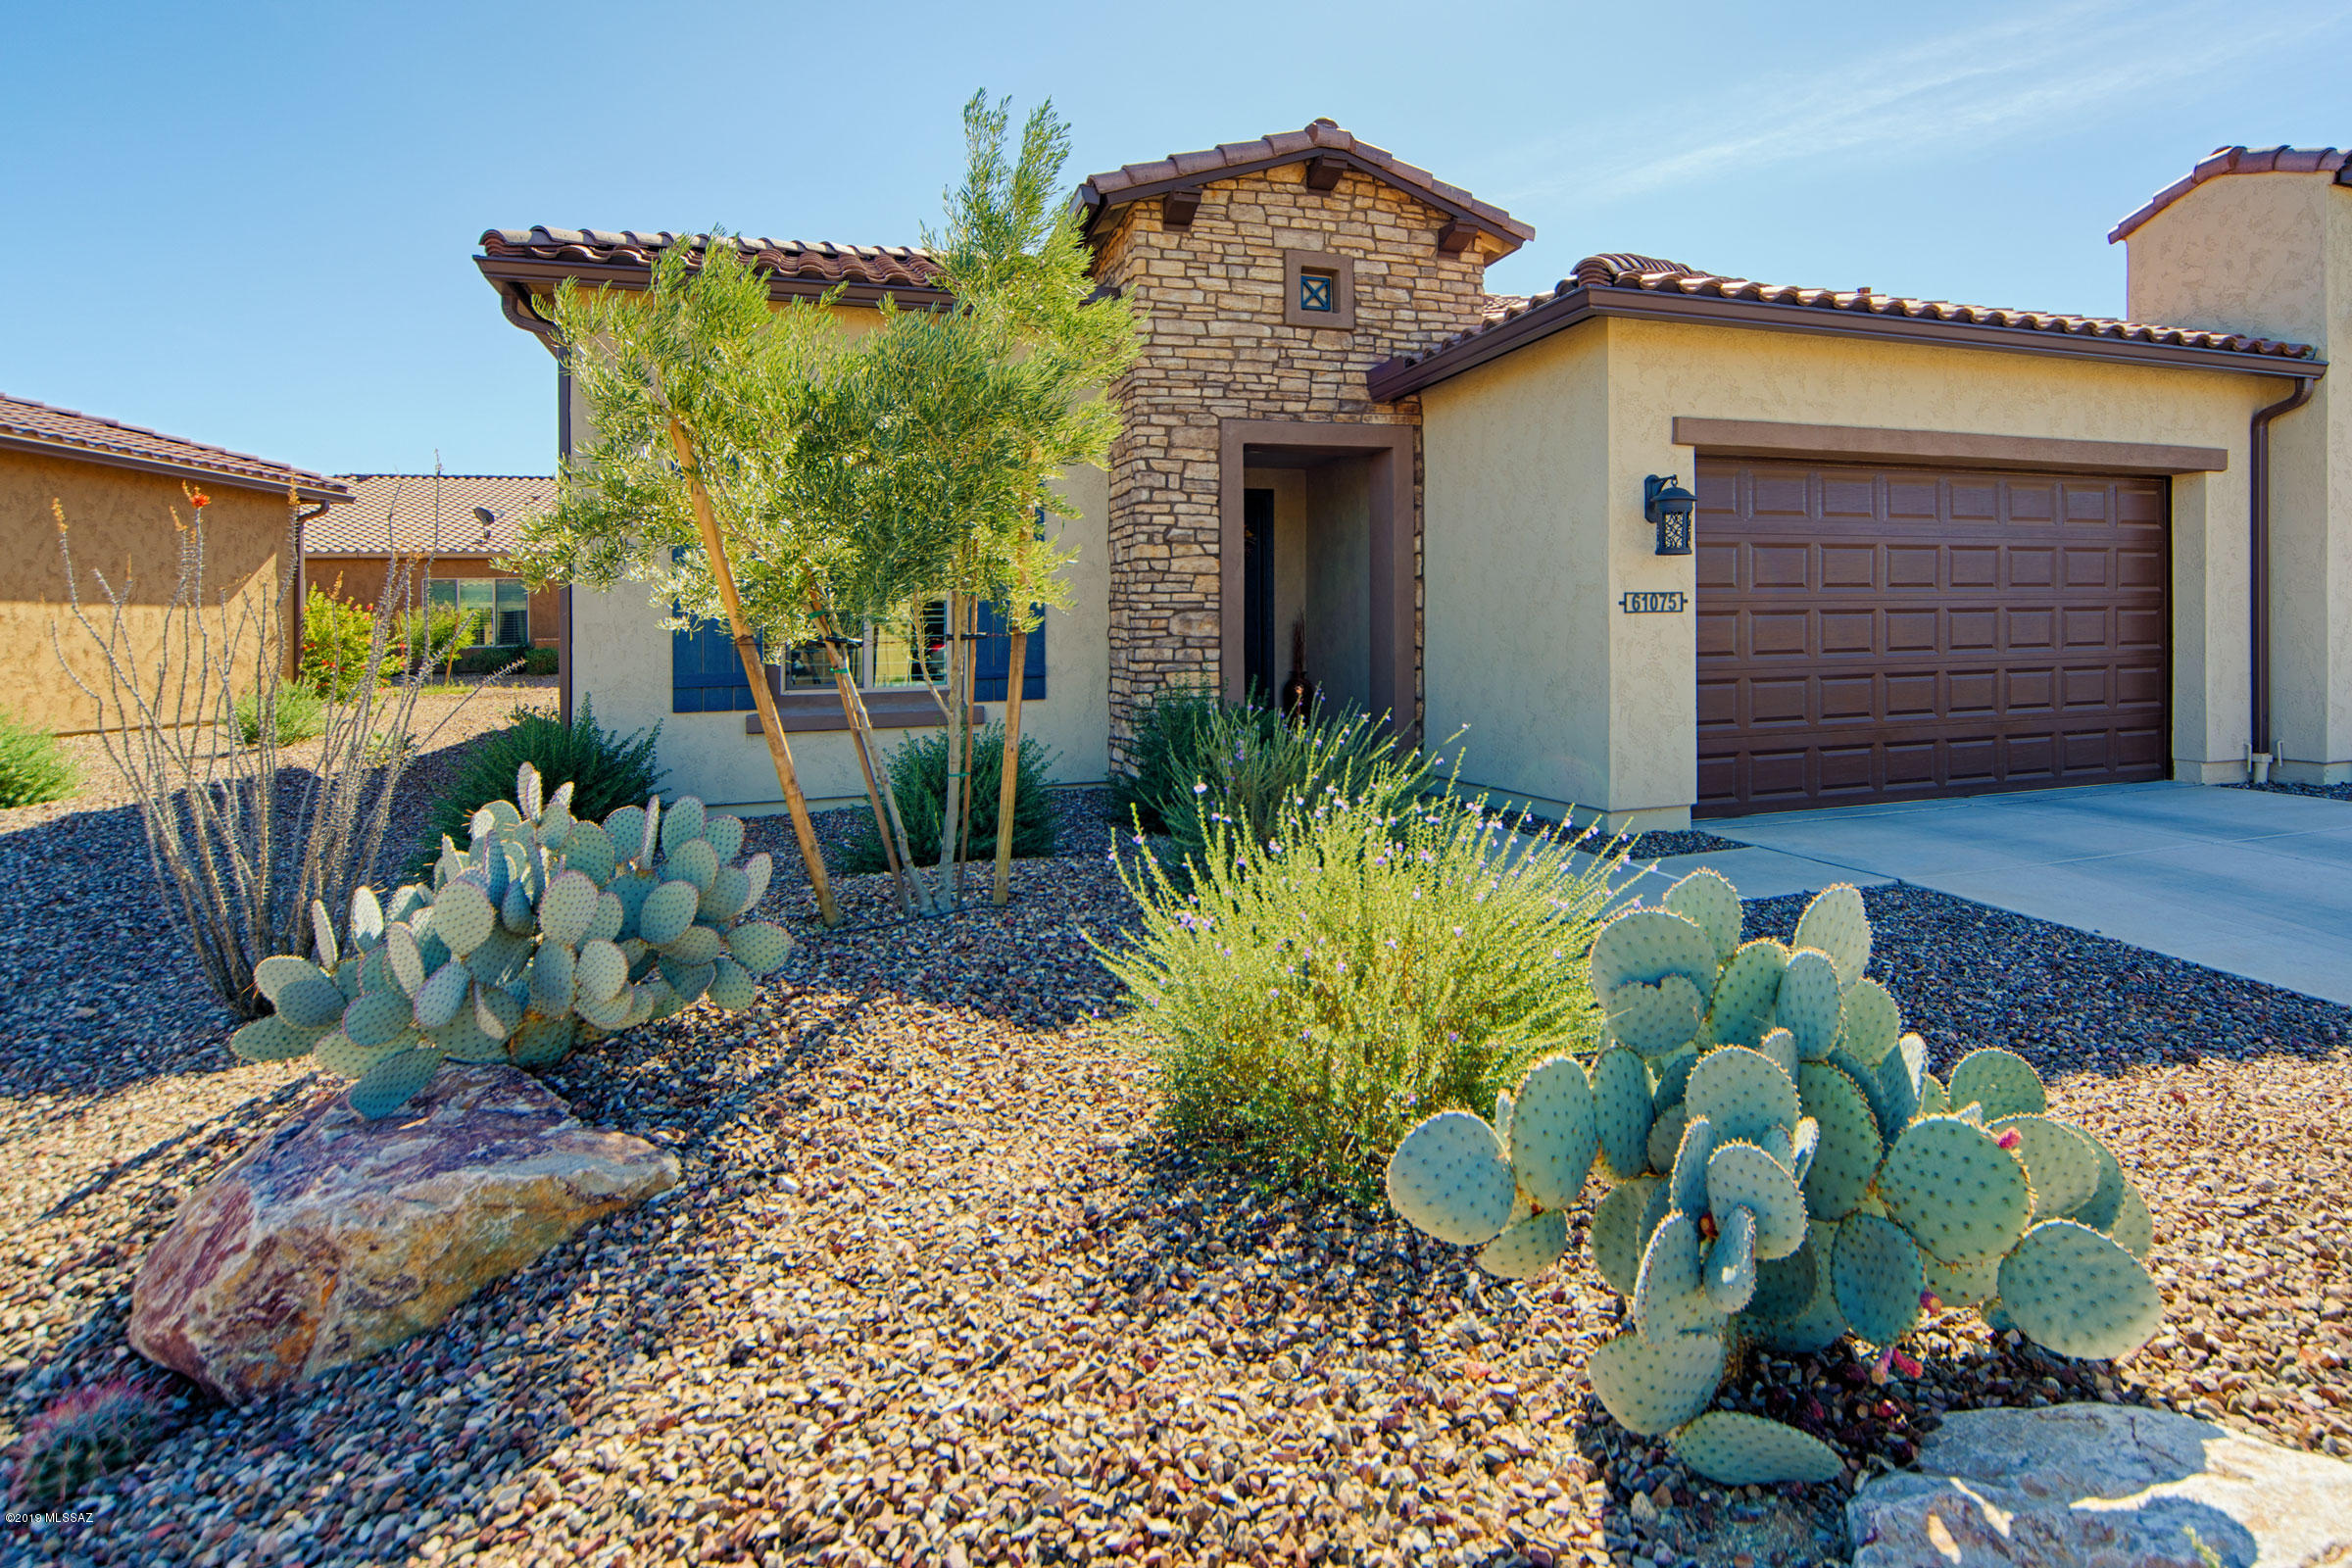 Photo of 61075 E Slate Road, Oracle, AZ 85623